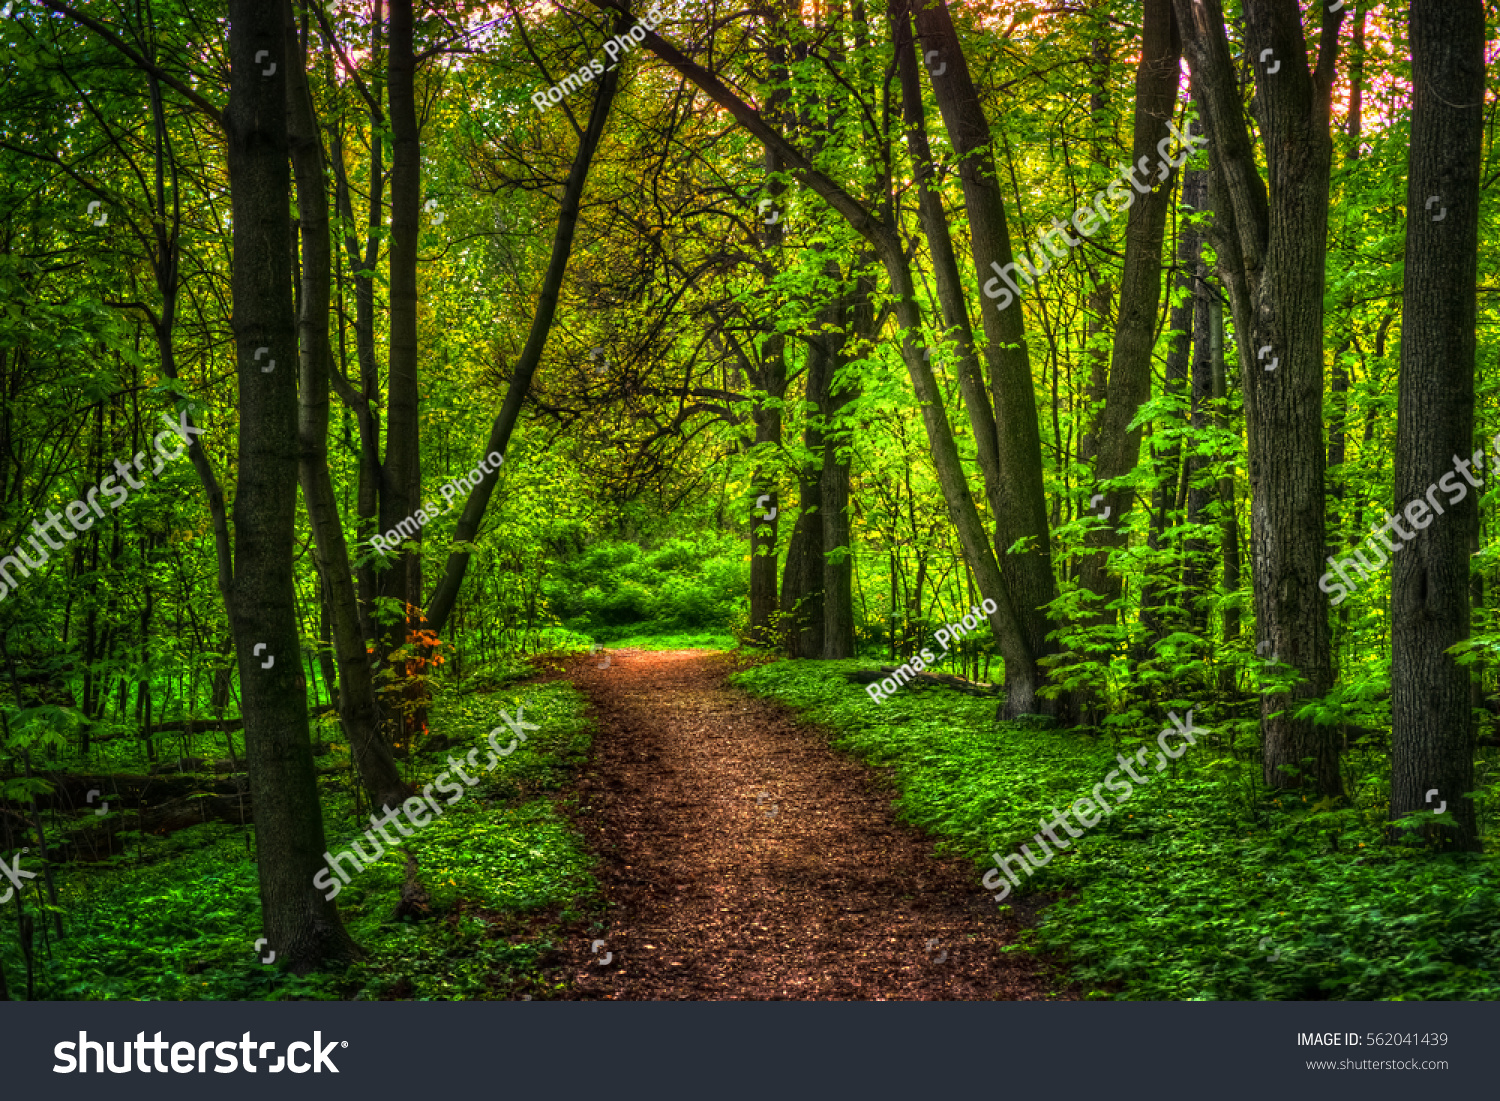 Colorful Summer Landscape Pathway Woods Green Stock Photo (Royalty ...